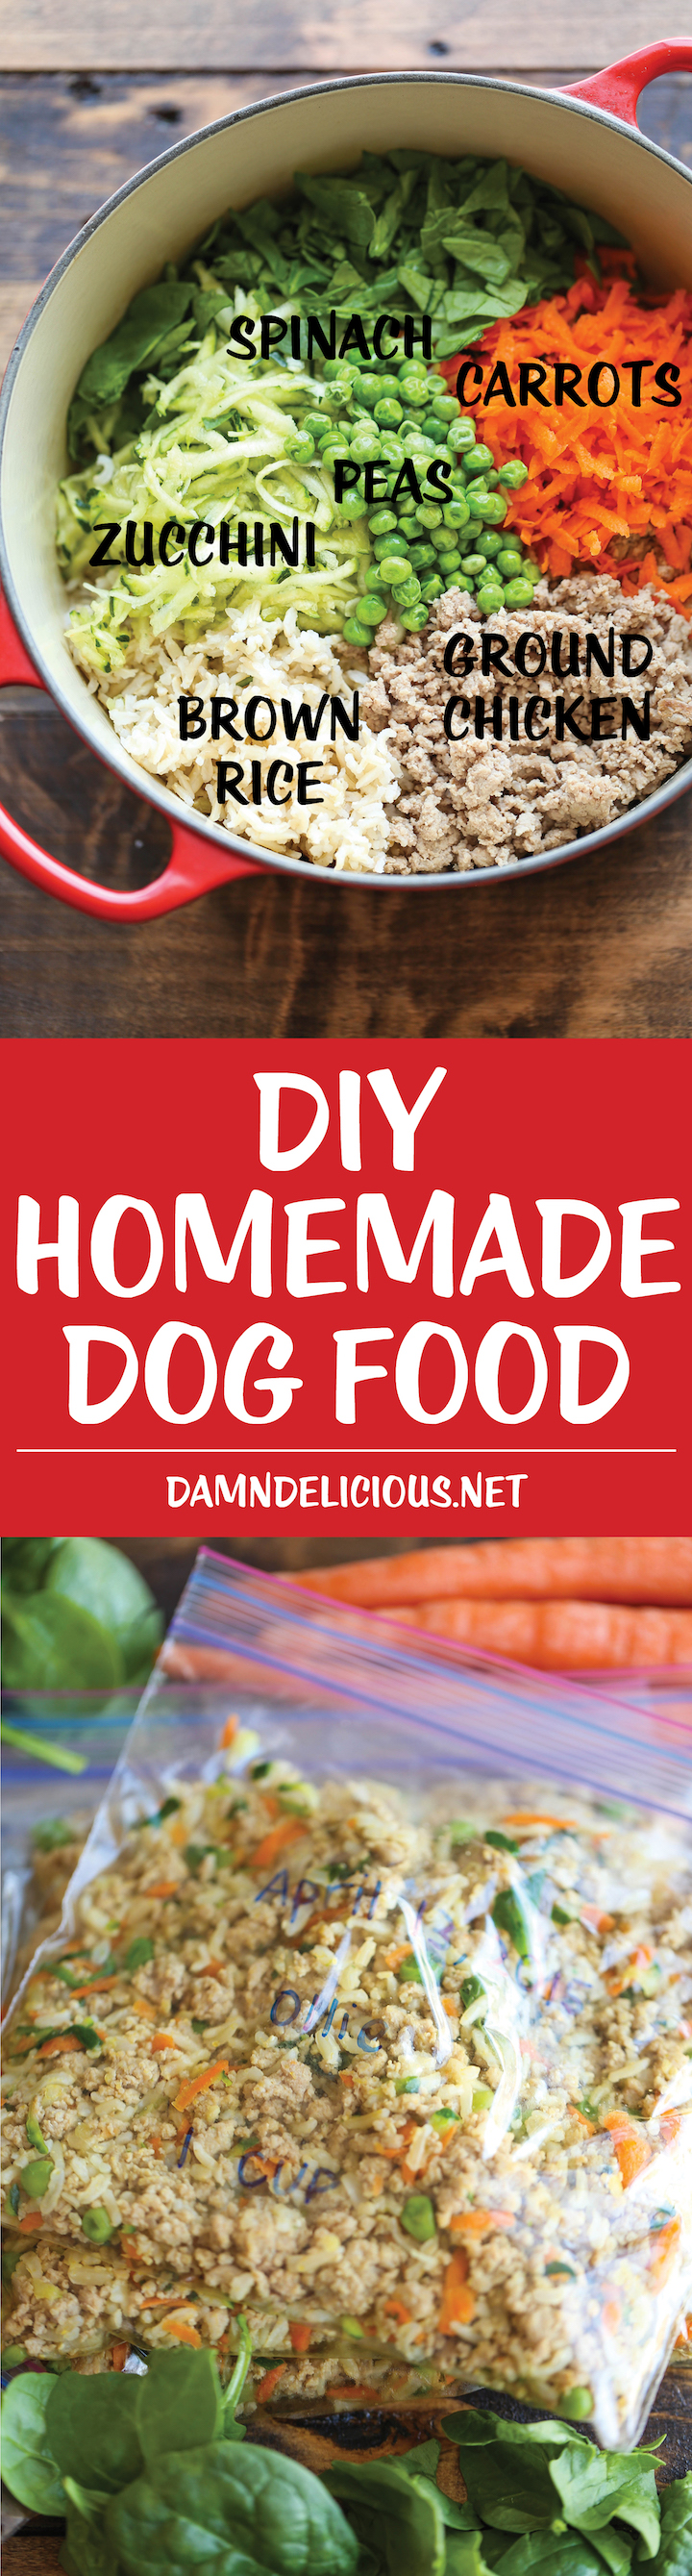 Diy Homemade Dog Food Damn Delicious